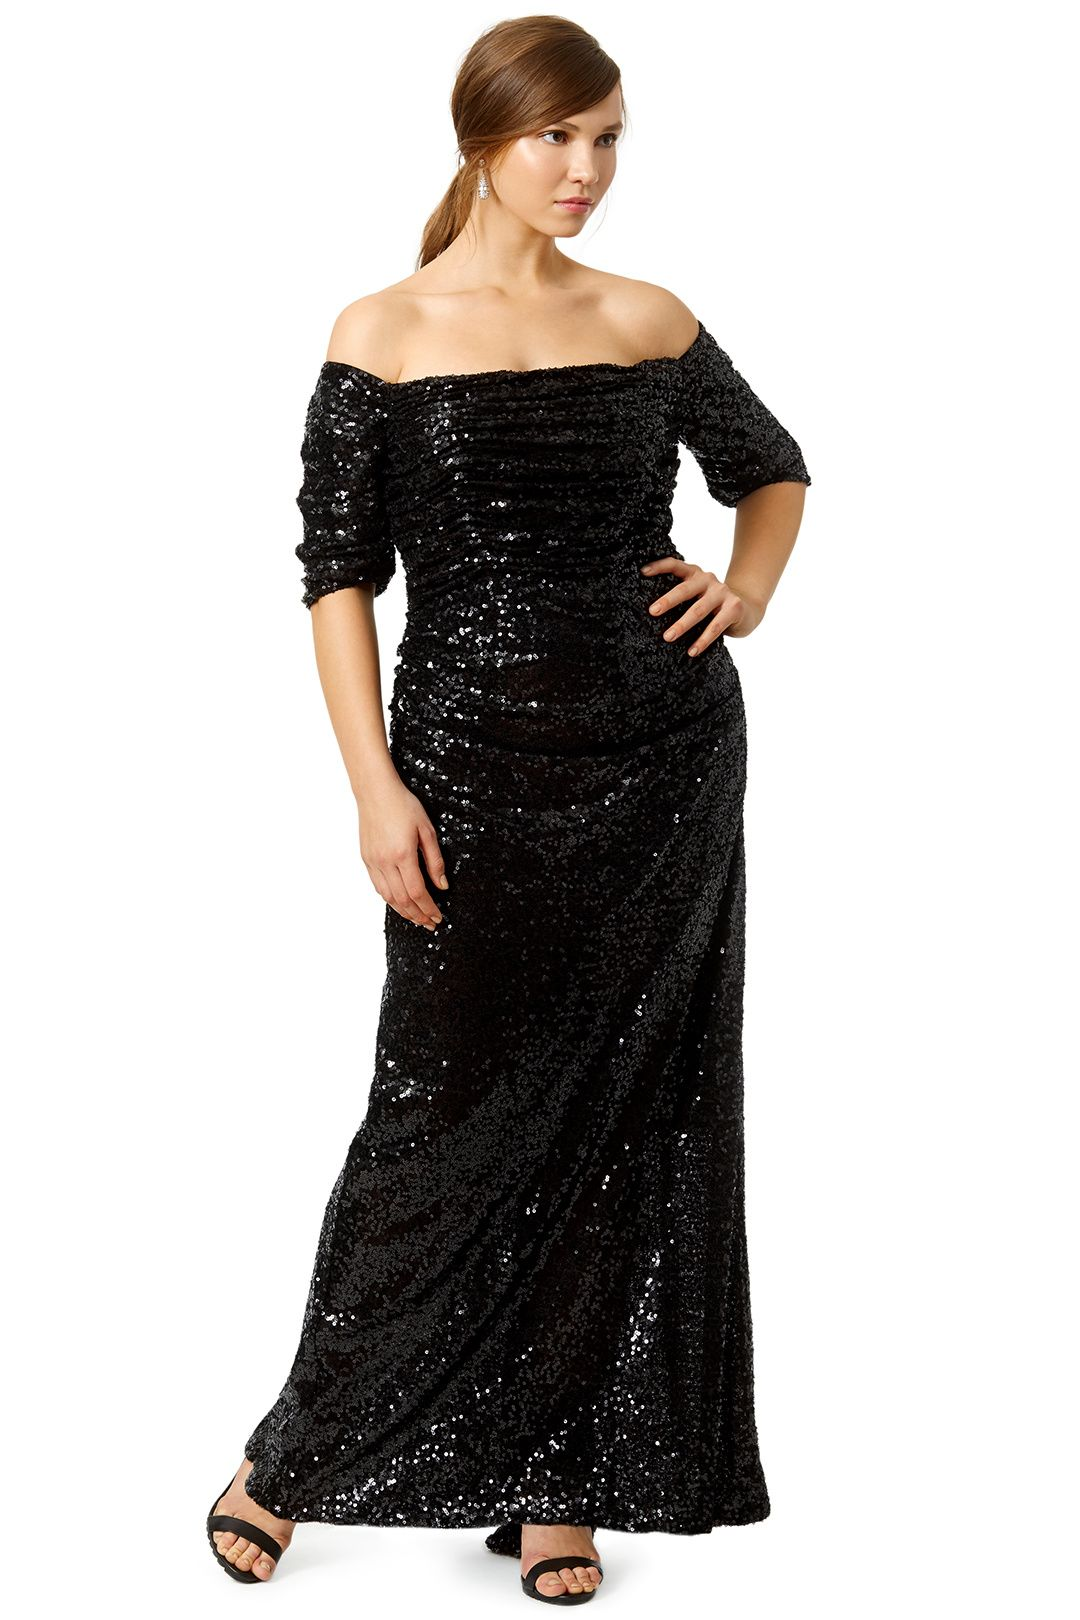 Midnight Stars Gown by Badgley Mischka for 100 Rent The